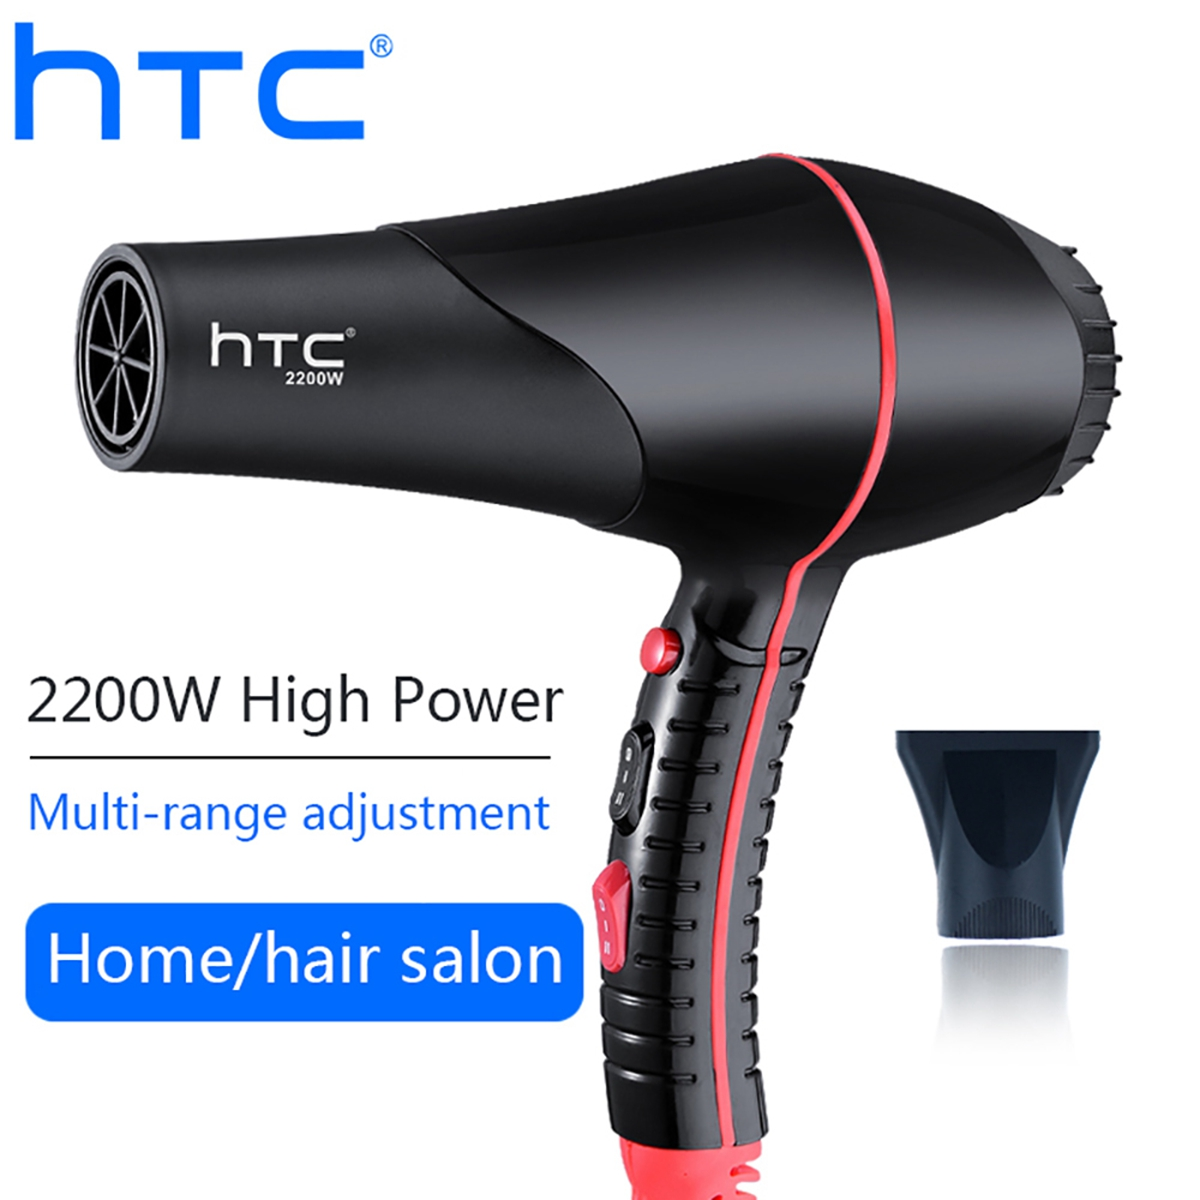 HTC Hair Dryer Professional 2200W Strong Power Hair Dryer For Hairdressing Barber Salon Tools Blow Hairdryer Hair Dryer Fan